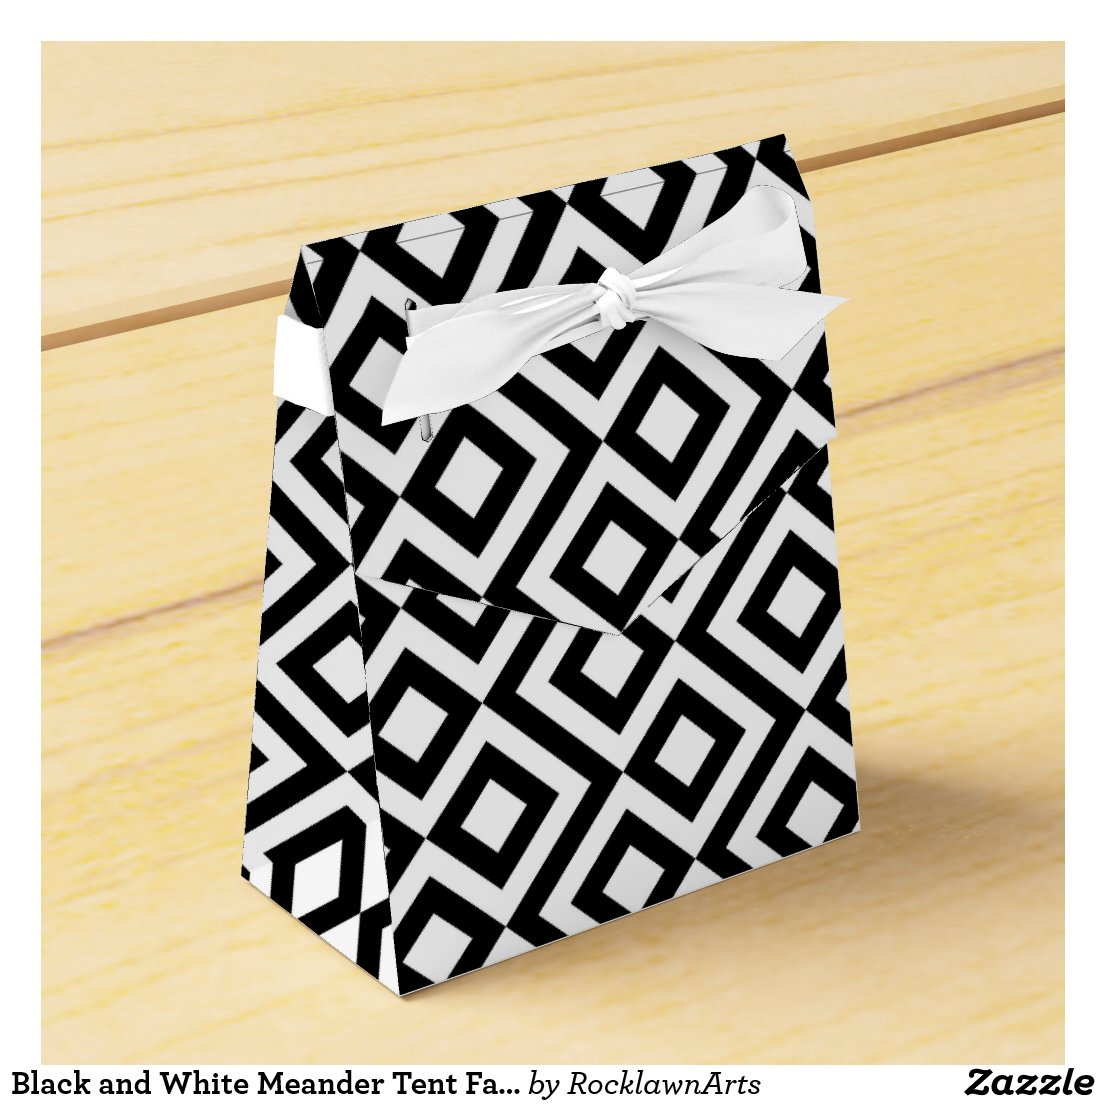 Black and White Meander Tent Favor Box